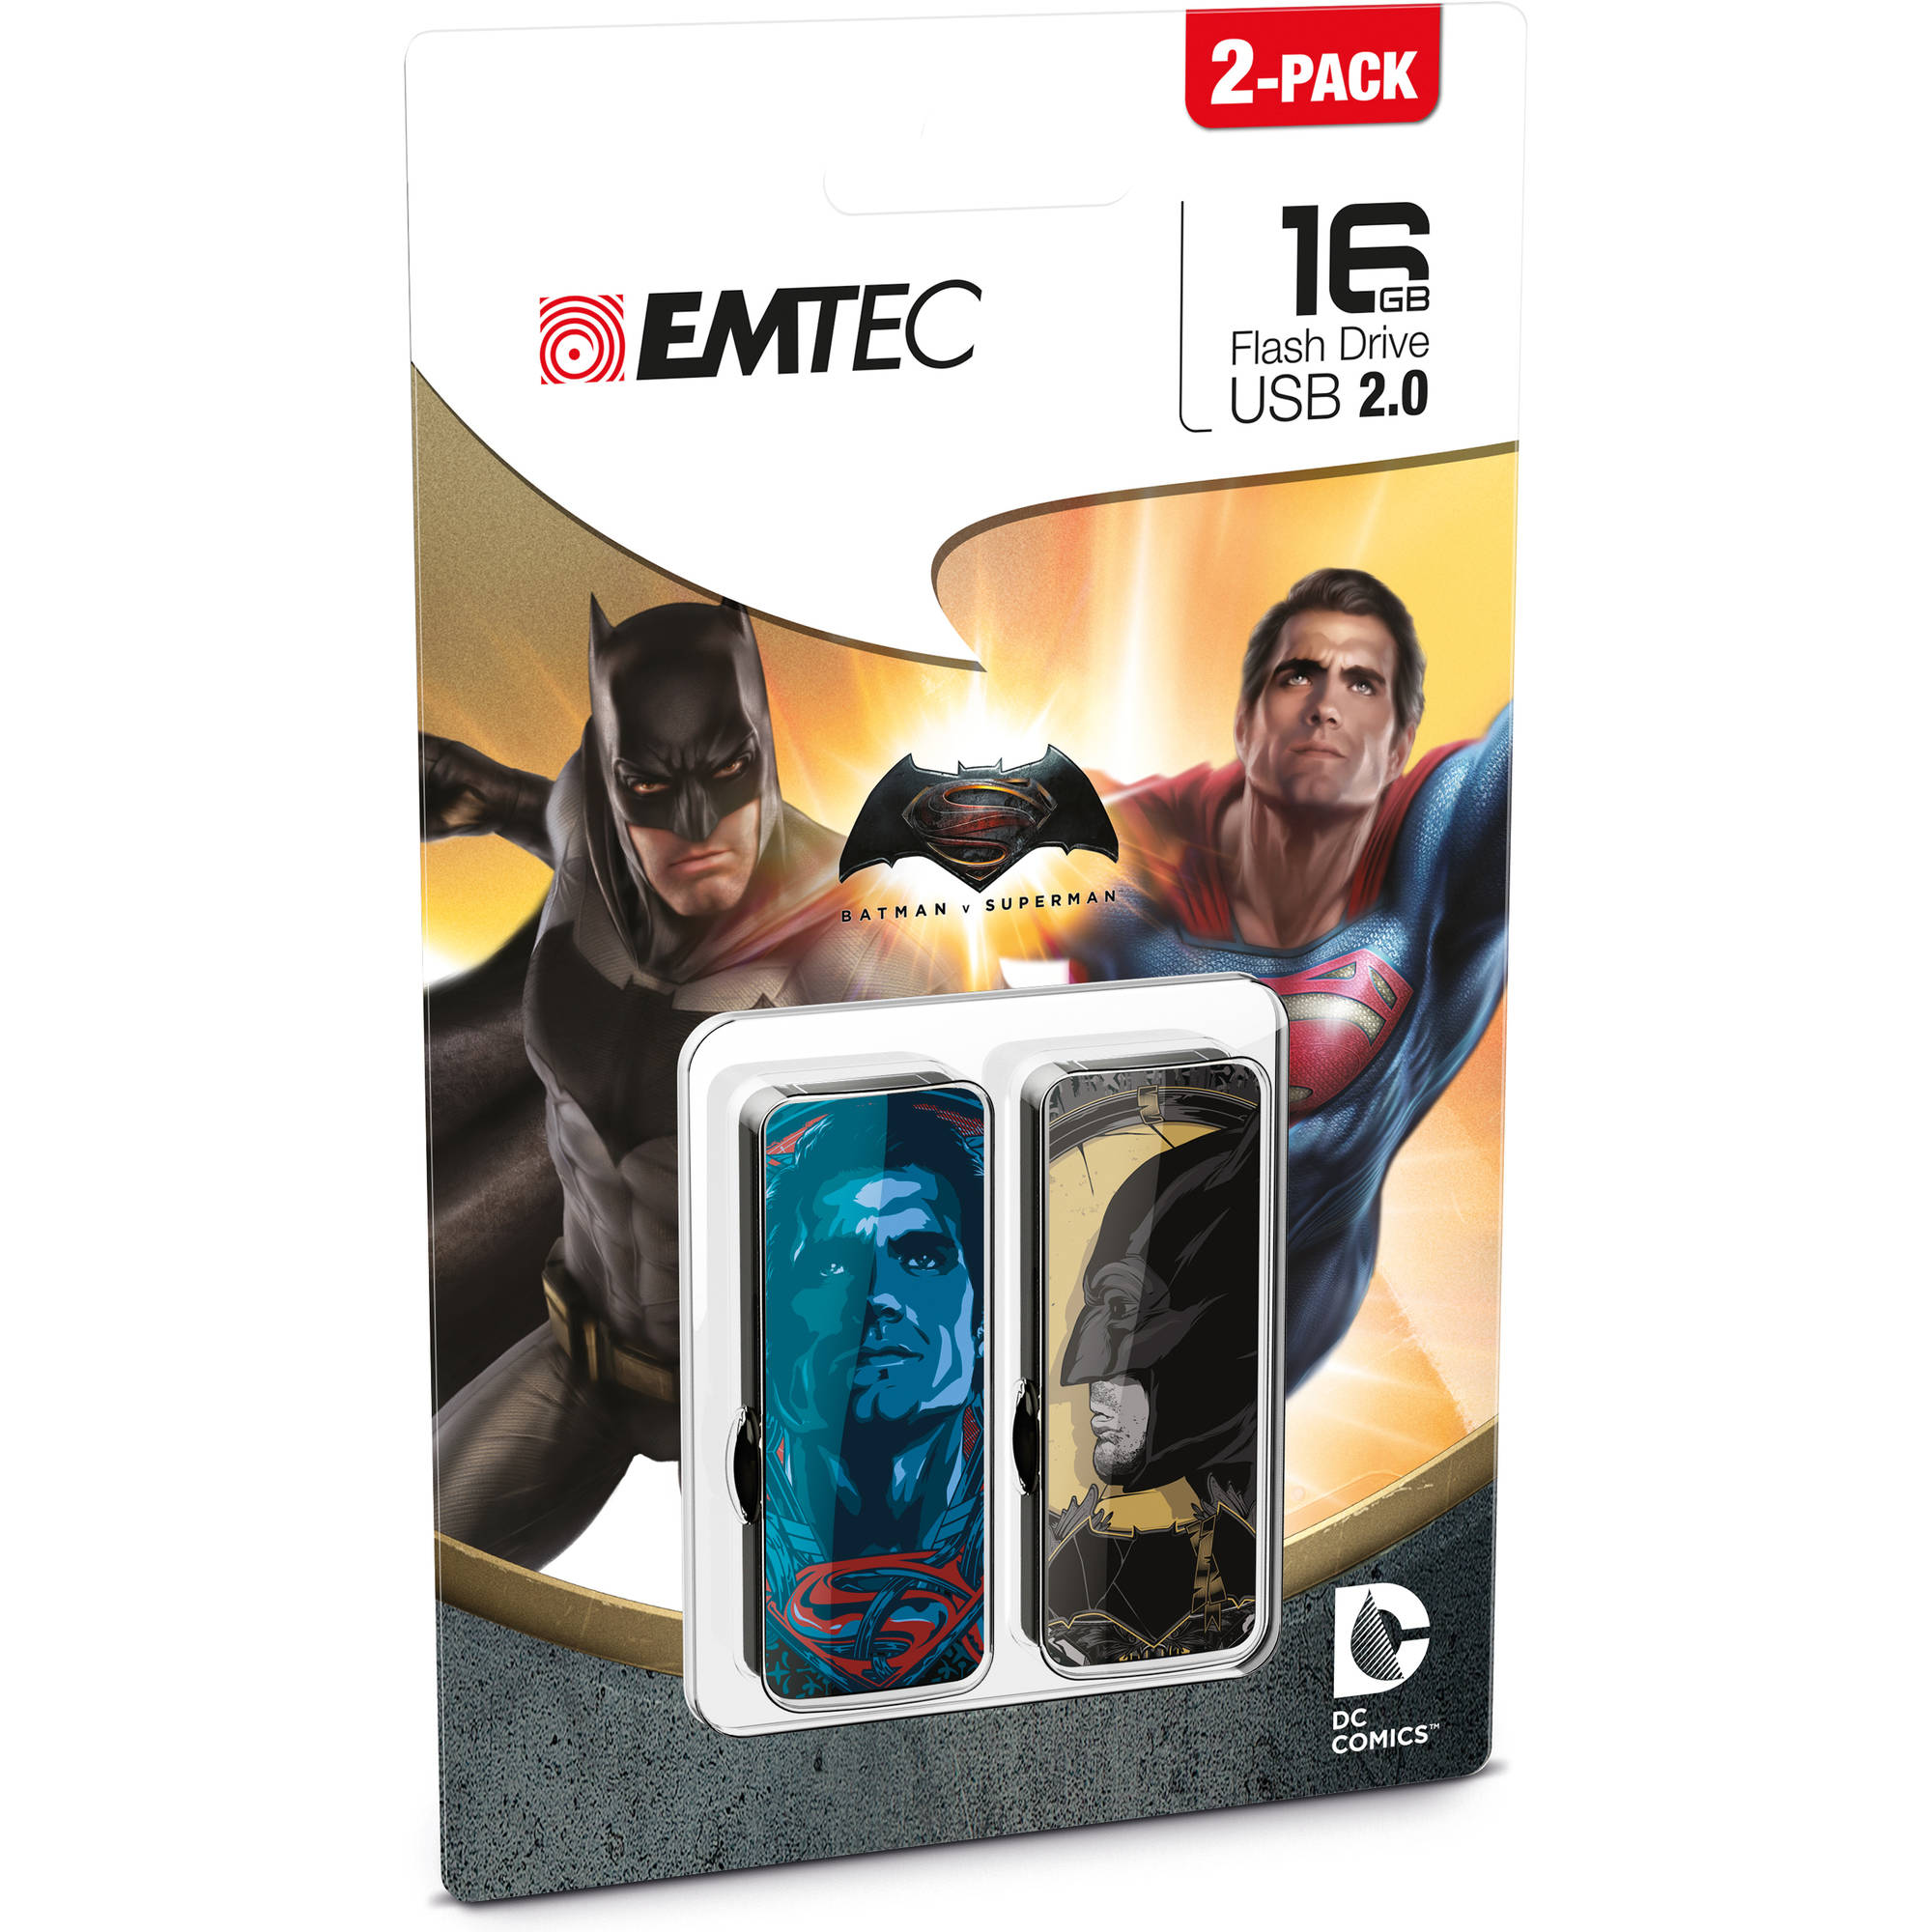 EMTEC 16GB Batman V Superman: Dawn of Justice USB 2.0 Flash Drive, 2-Pack